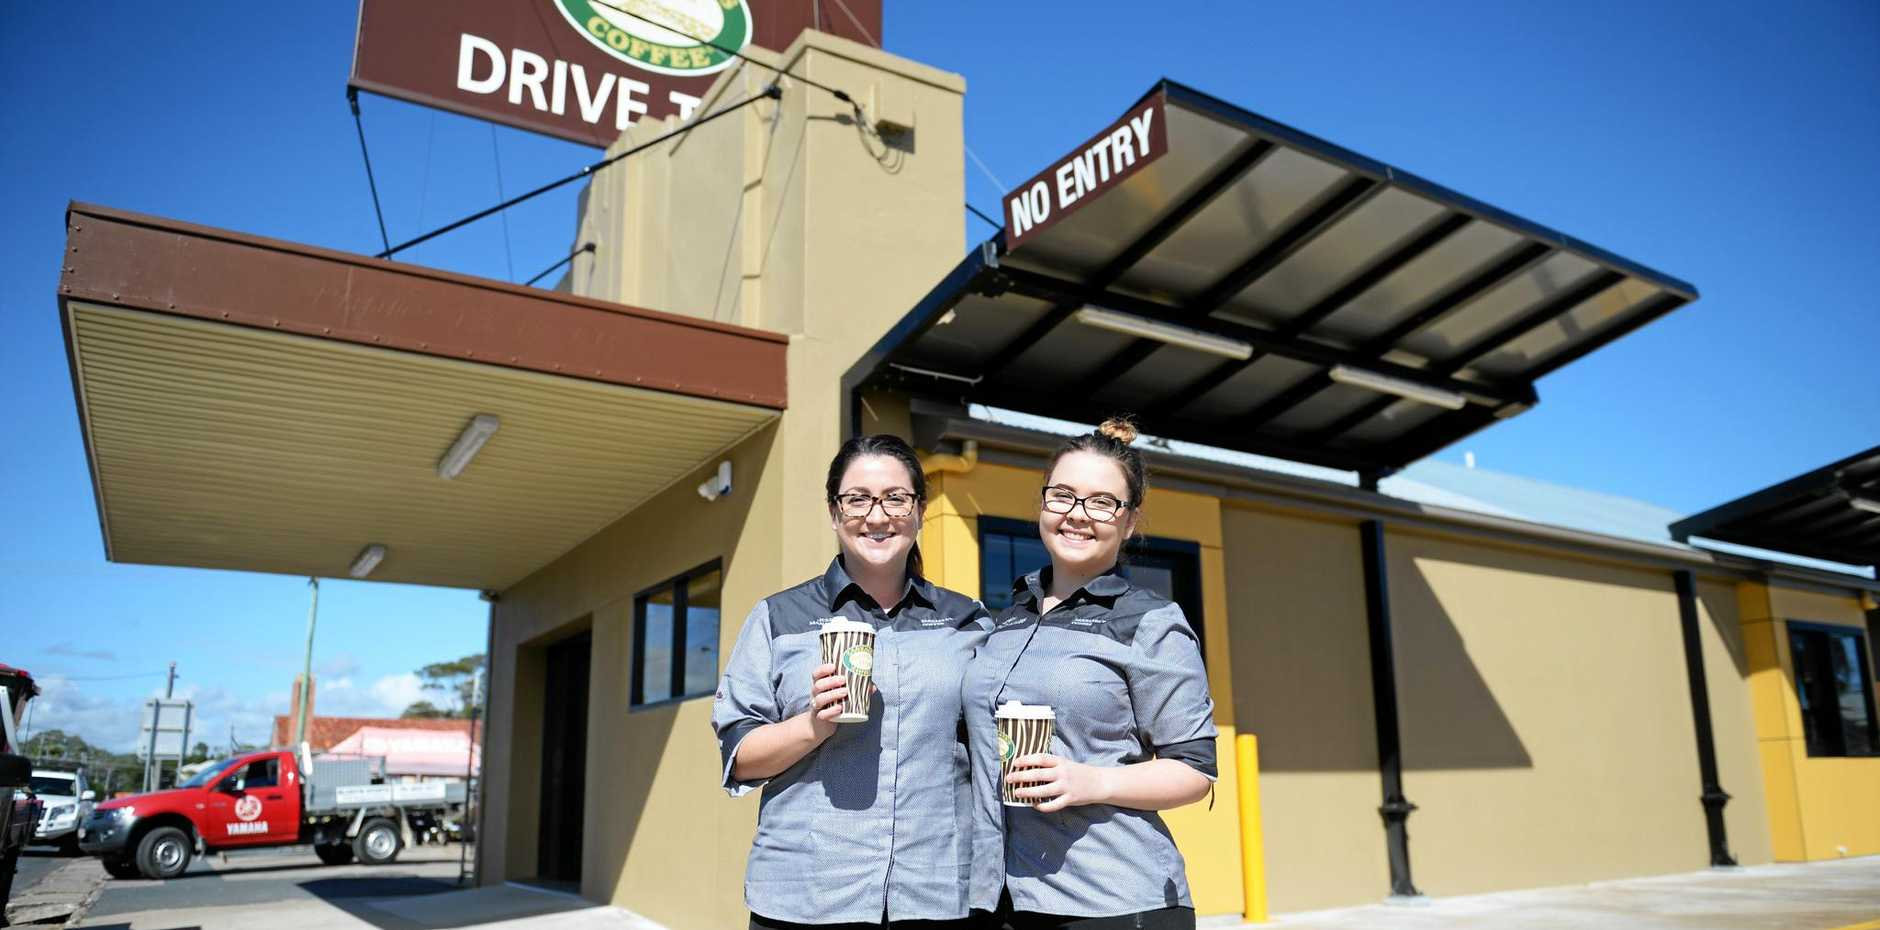 Zarraffa's drive thru coffee is just one of the dozens of businesses for sale in Mackay right now.